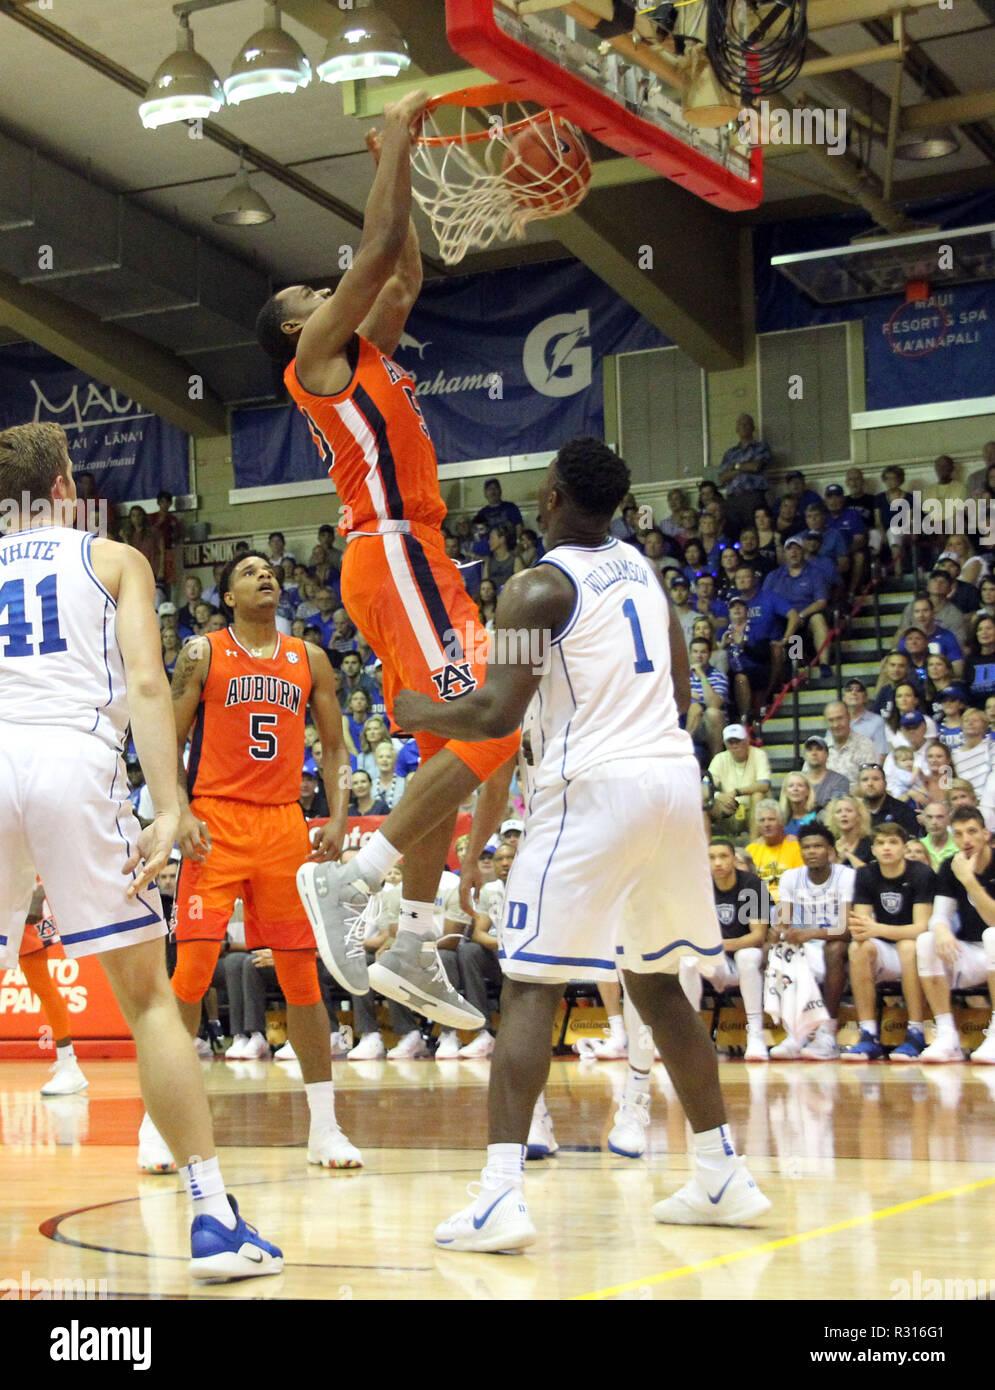 Image result for Austin Wiley images